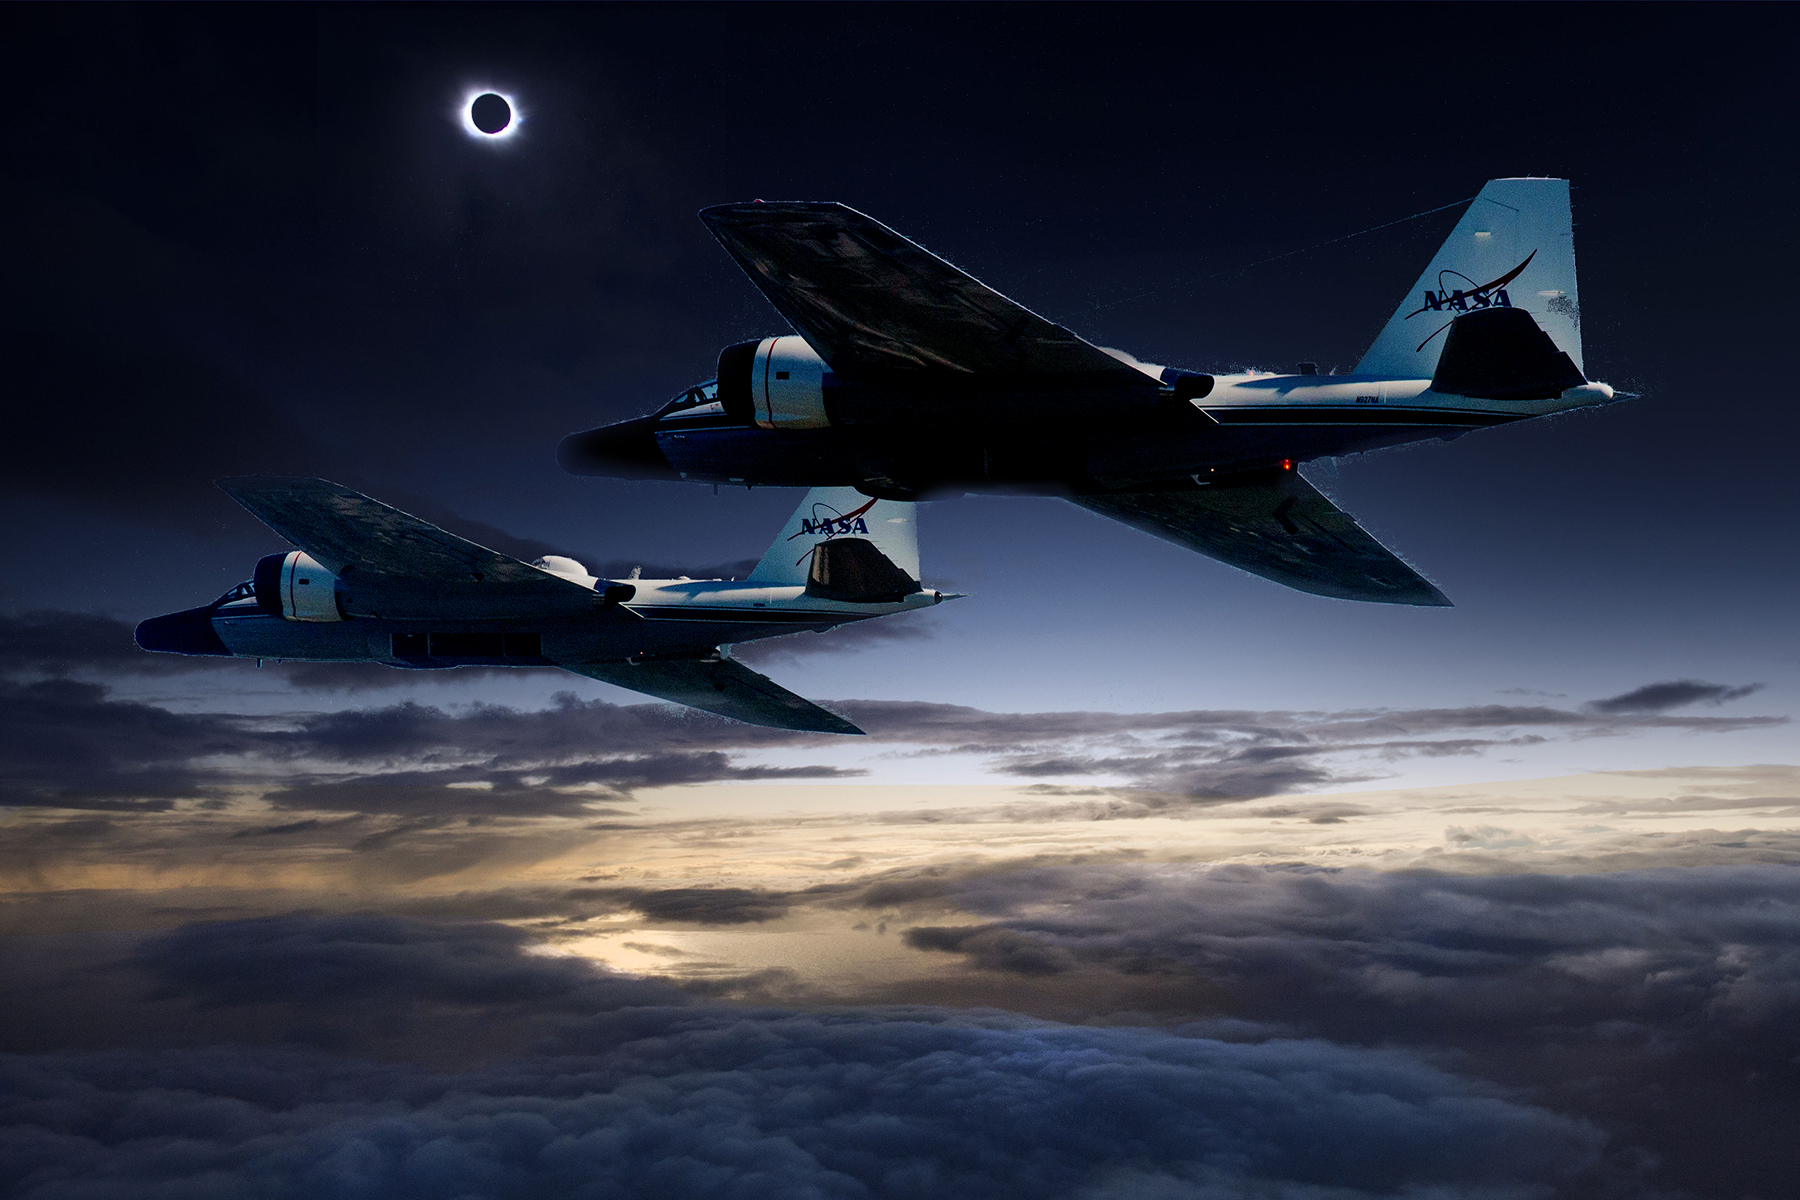 (Photo illustration) During the upcoming total solar eclipse, a team of NASA-funded scientists will observe the solar corona using stabilized telescopes aboard two of NASA's WB-57F research aircraft. This vantage point provides distinct advantages over ground-based observations, as illustrated by this composite photo of the aircraft and the 2015 total solar eclipse at the Faroe Islands. - Image Credits: NASA/Faroe Islands/SwRI